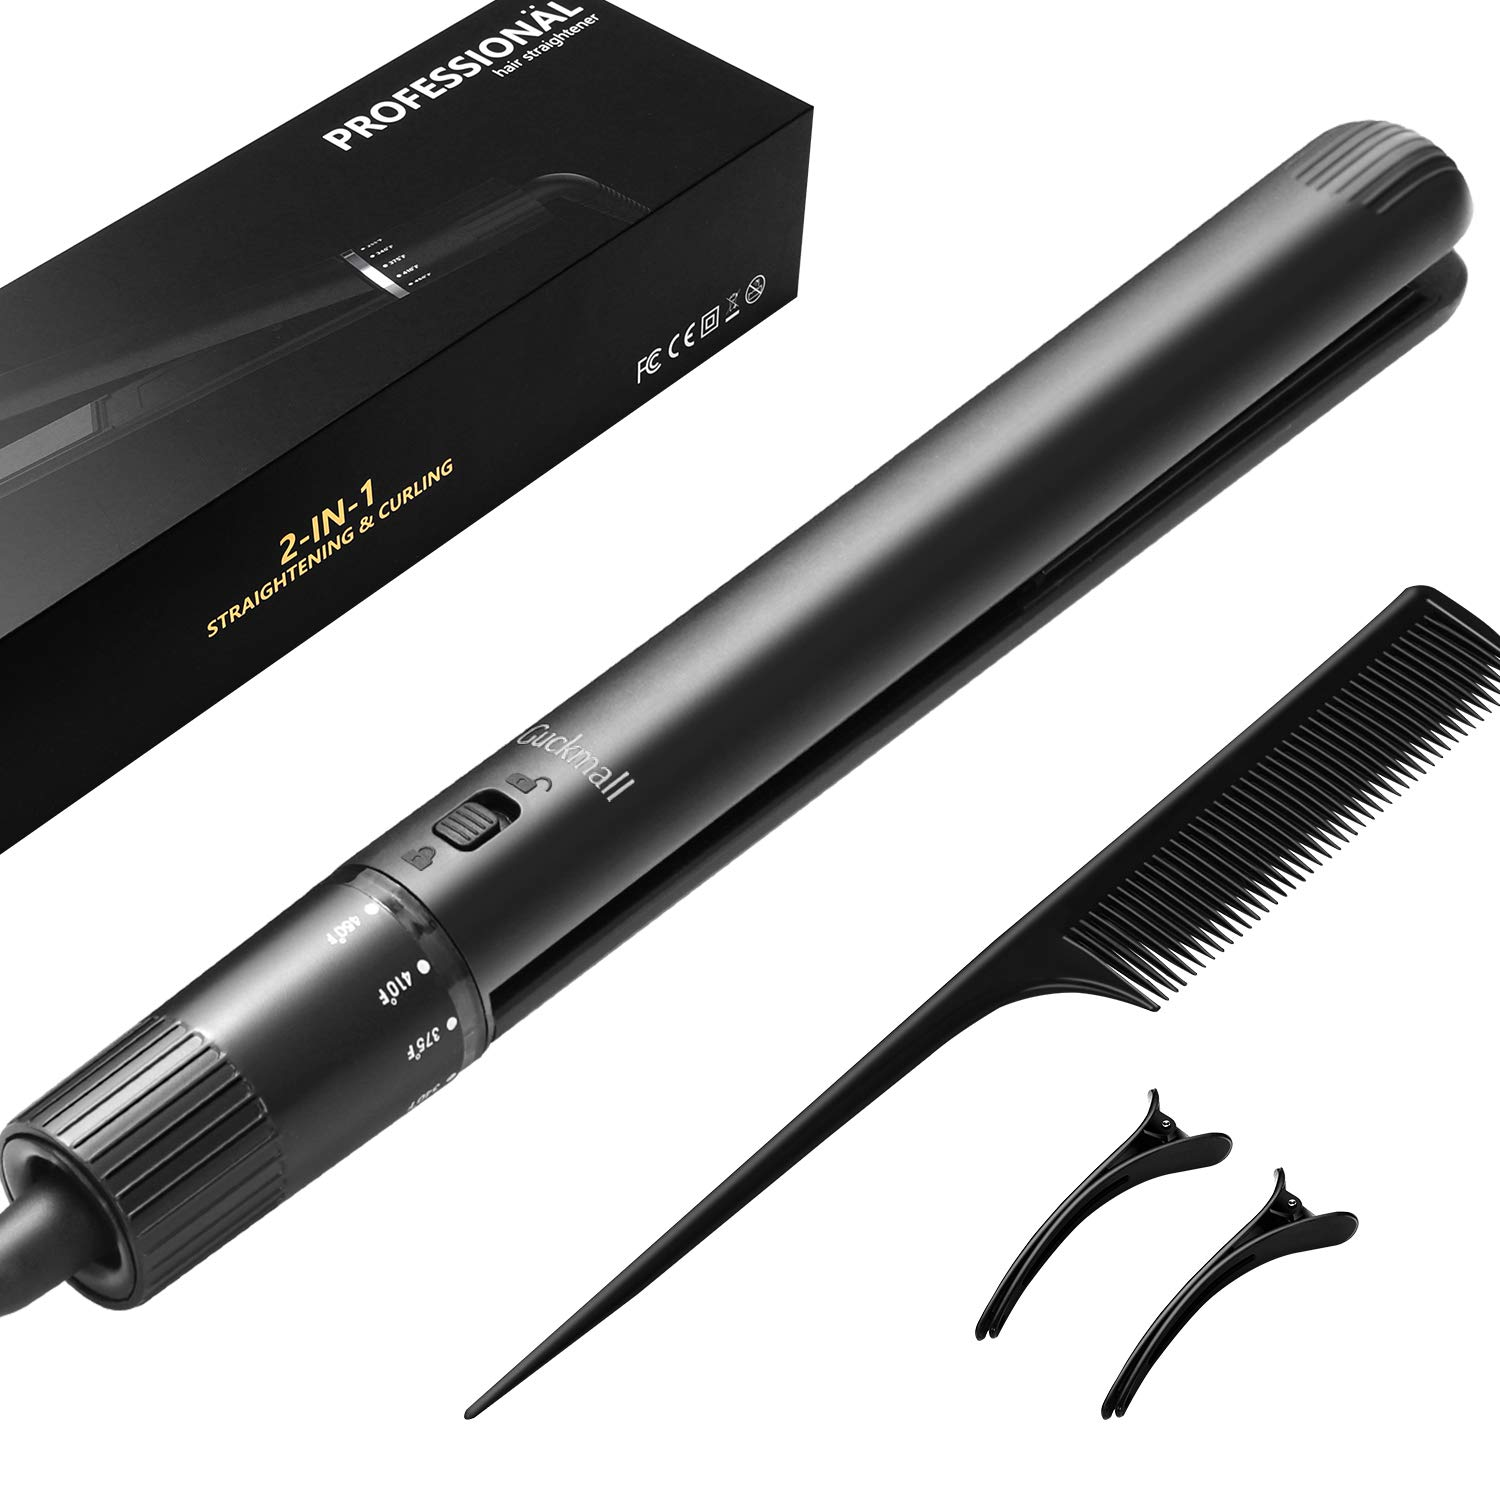 Guckmall Hair Straightener Professional Tourmaline Ceramic Flat Iron Straightener with Rotating Adjustable Temperature for All Hair Styling Travel Size